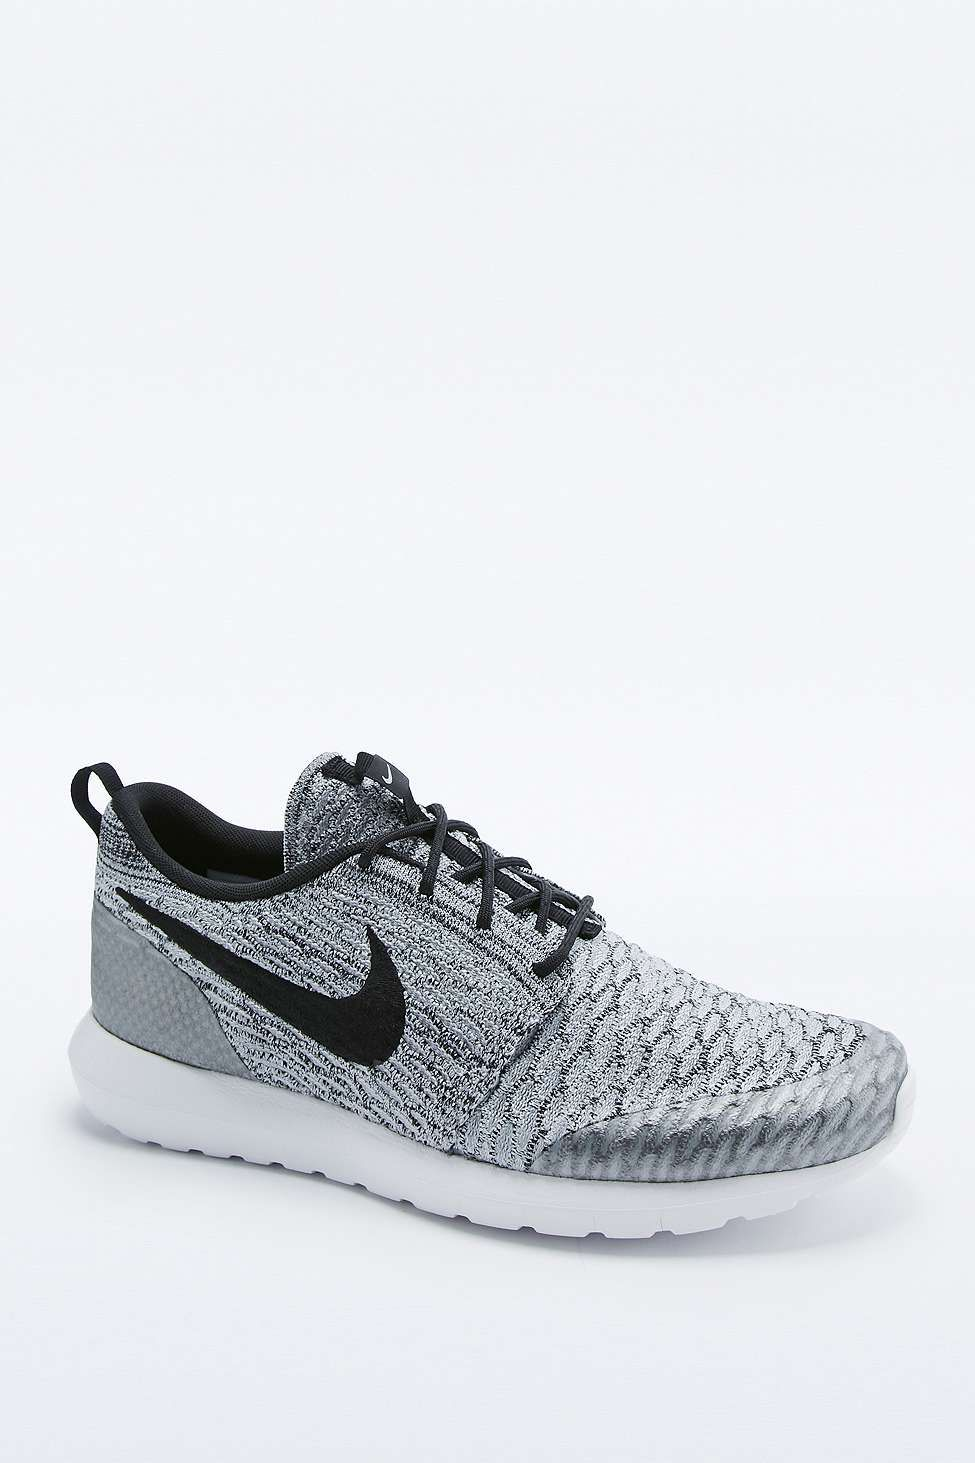 best sneakers f3aed 01229 Nike - Baskets Roshe NM Flyknit grises